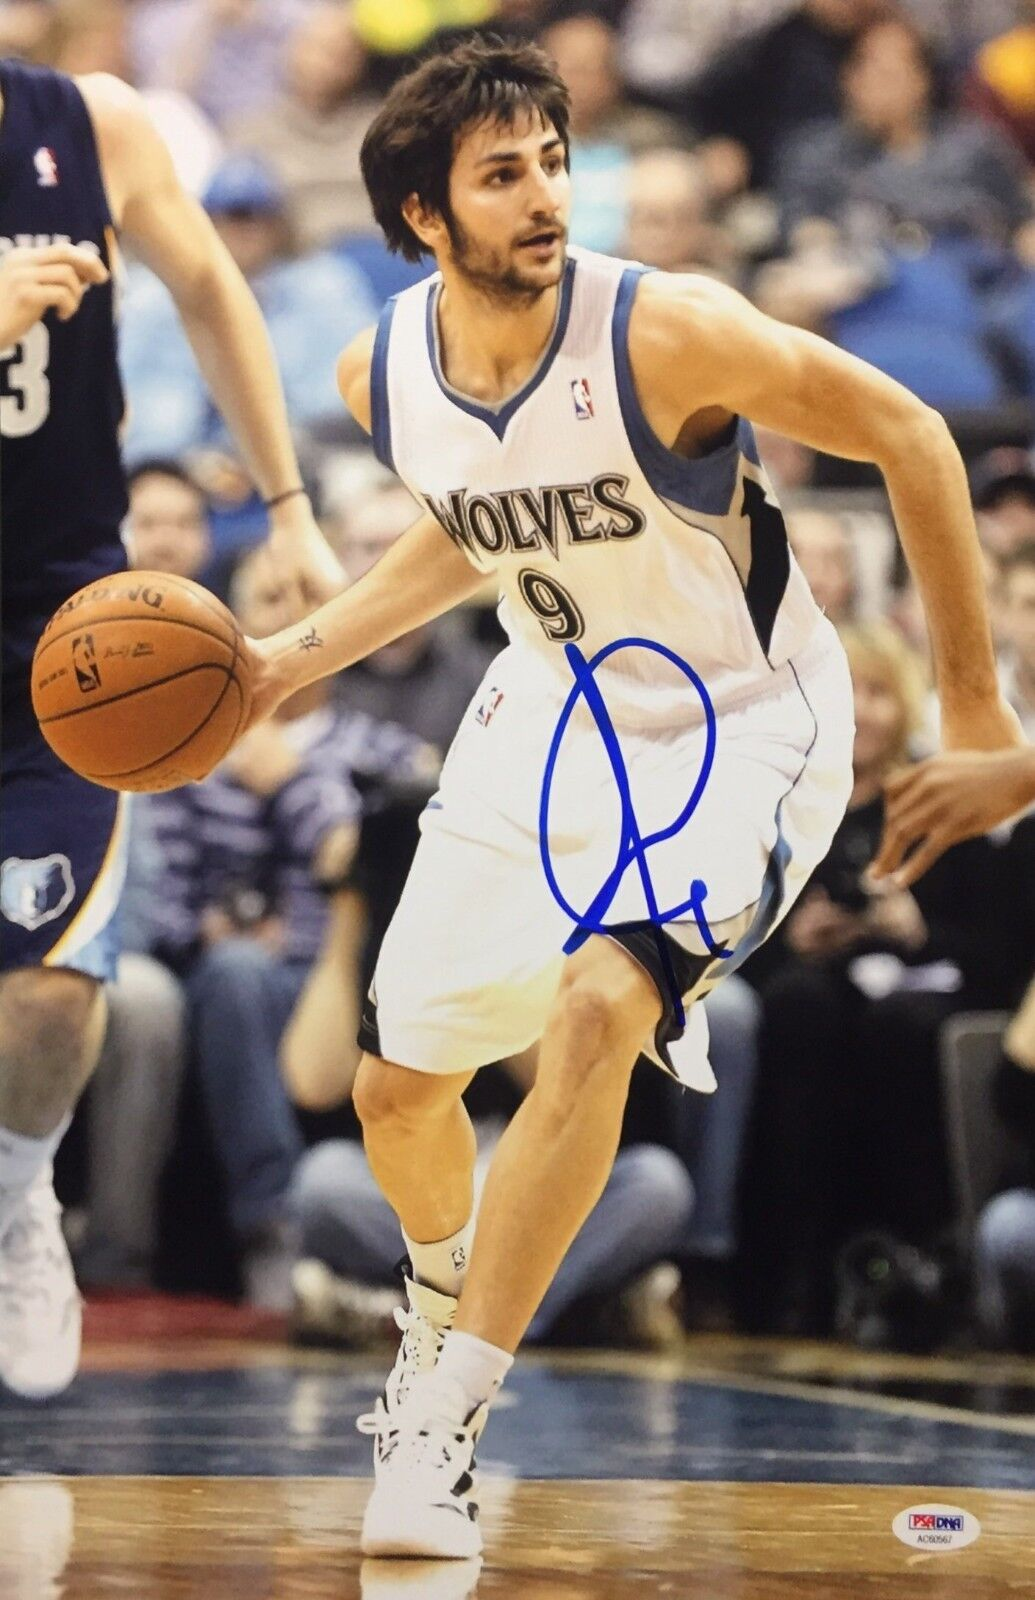 Ricky Rubio Signed Minnesota Timberwolves Basketball 12x18 Photo PSA AC60567